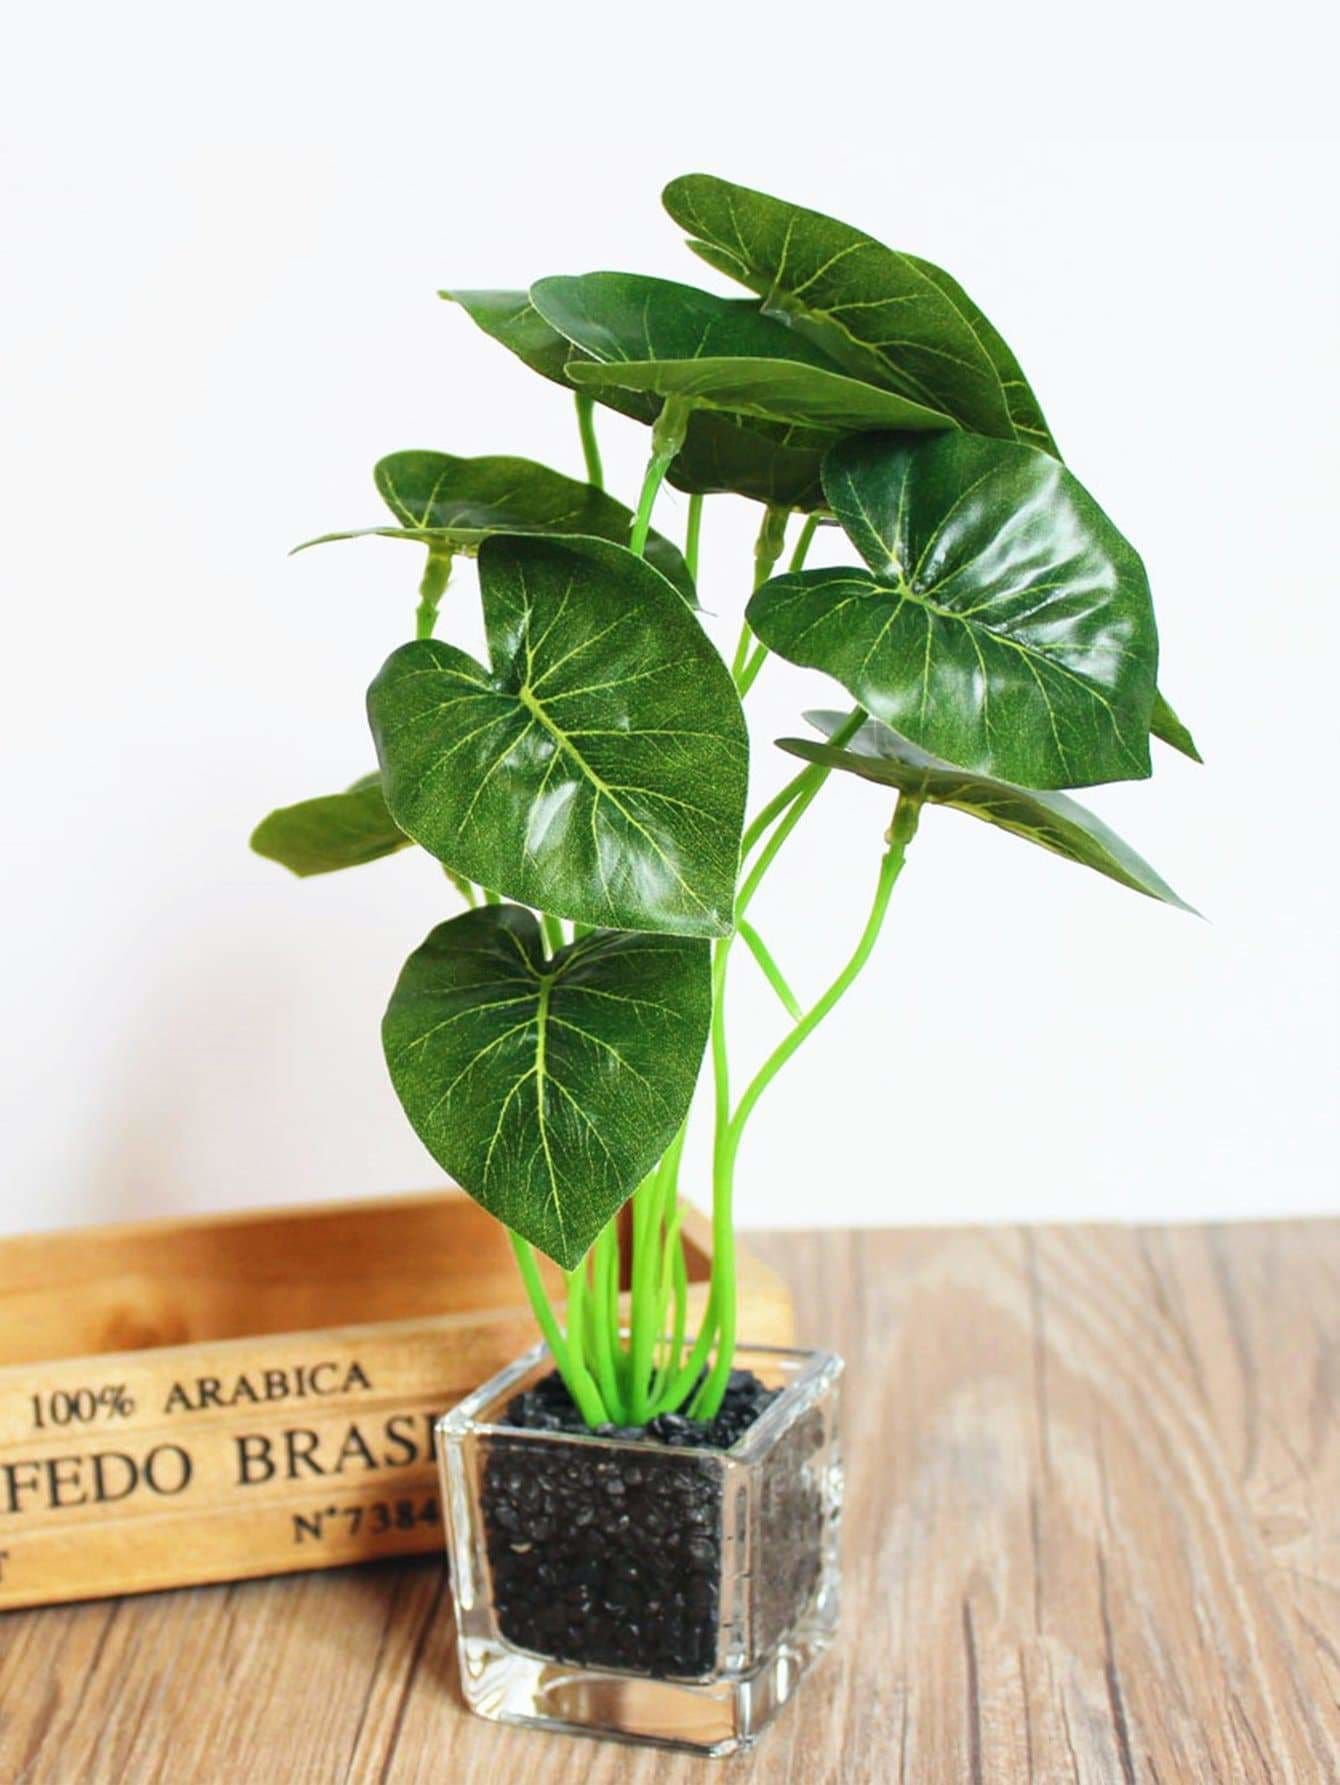 Artificial Potted Foliage - Vases & Artificial Flowers